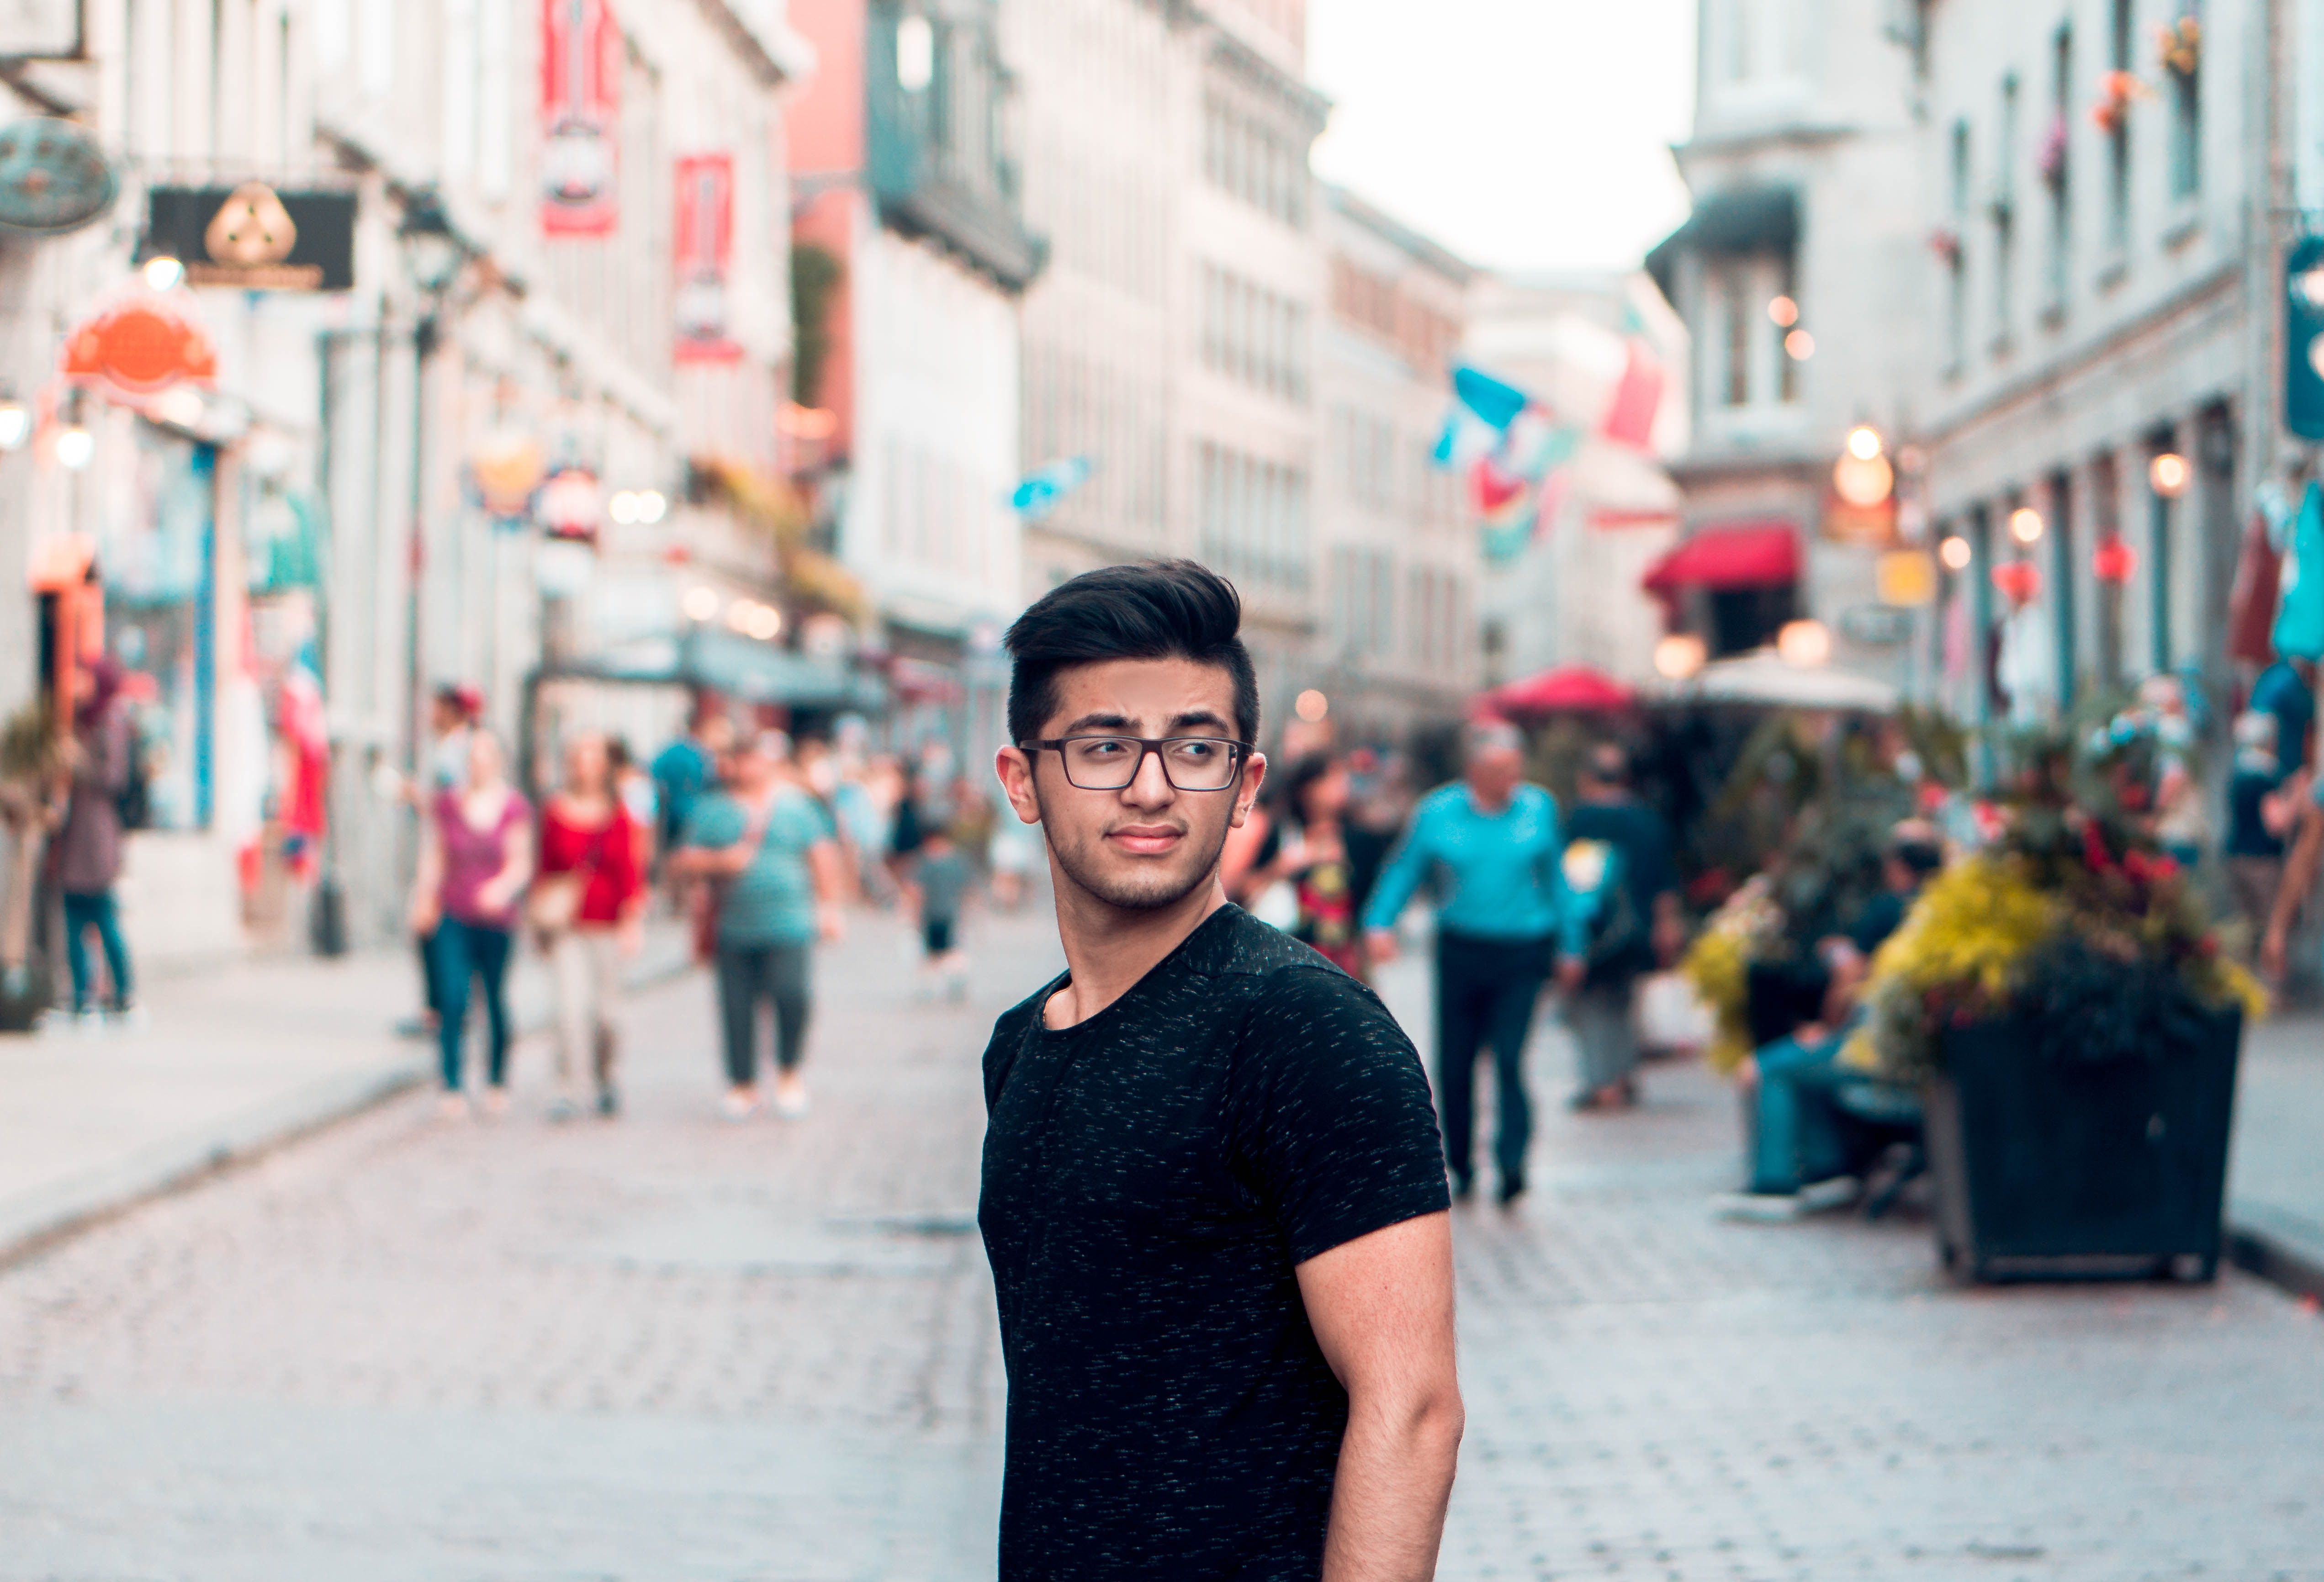 A young man in glasses on a paved street in Montreal